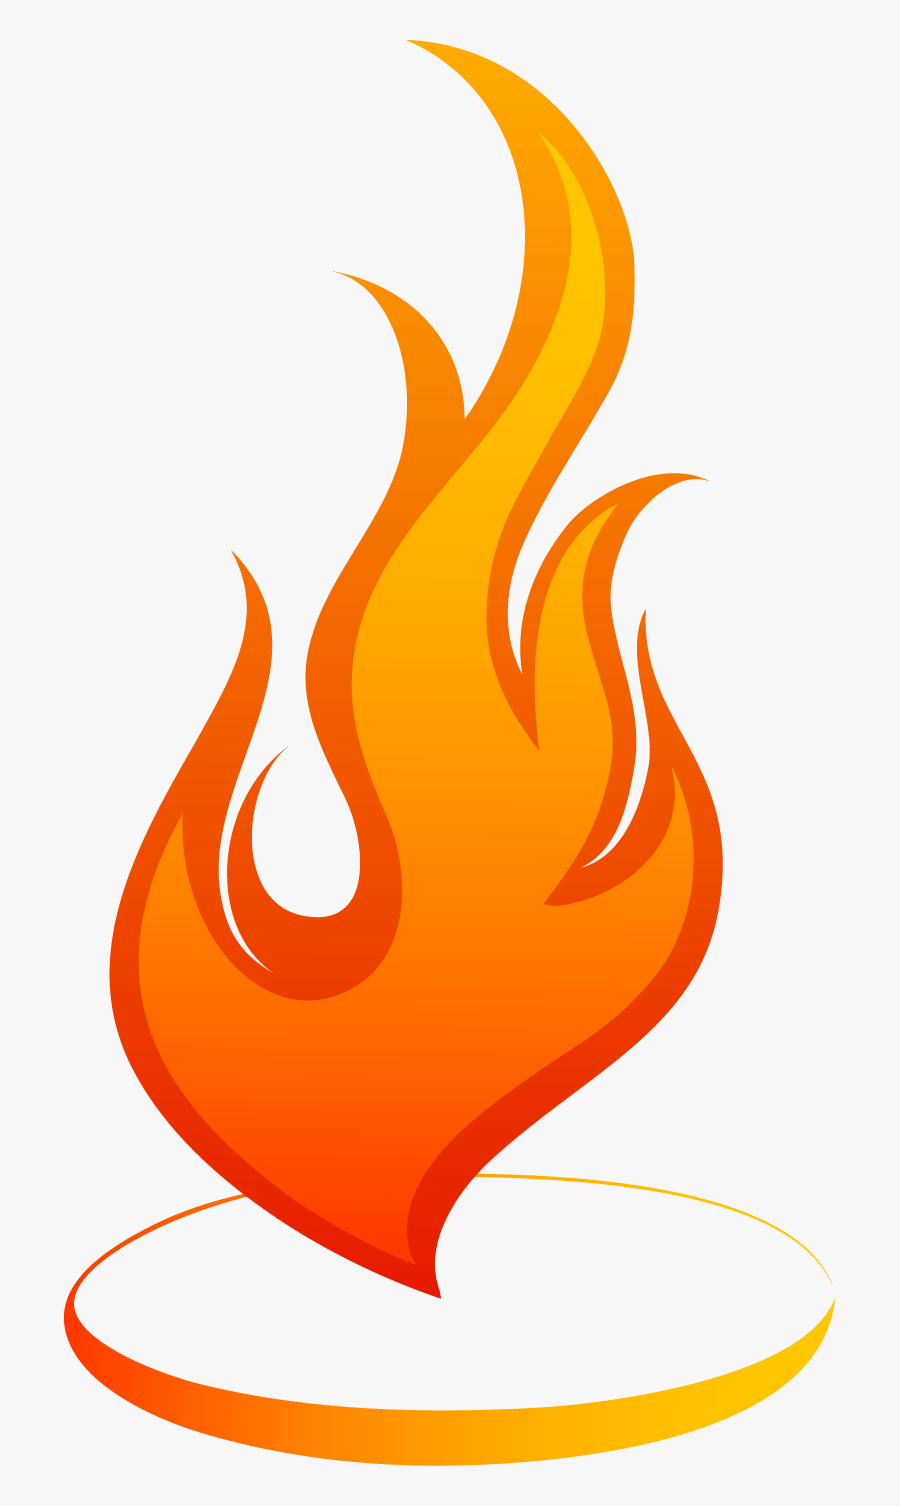 Explosion, Fiery, Fireball, Flaming, Flammable, Frame, - Frame Of Fire, Transparent Clipart